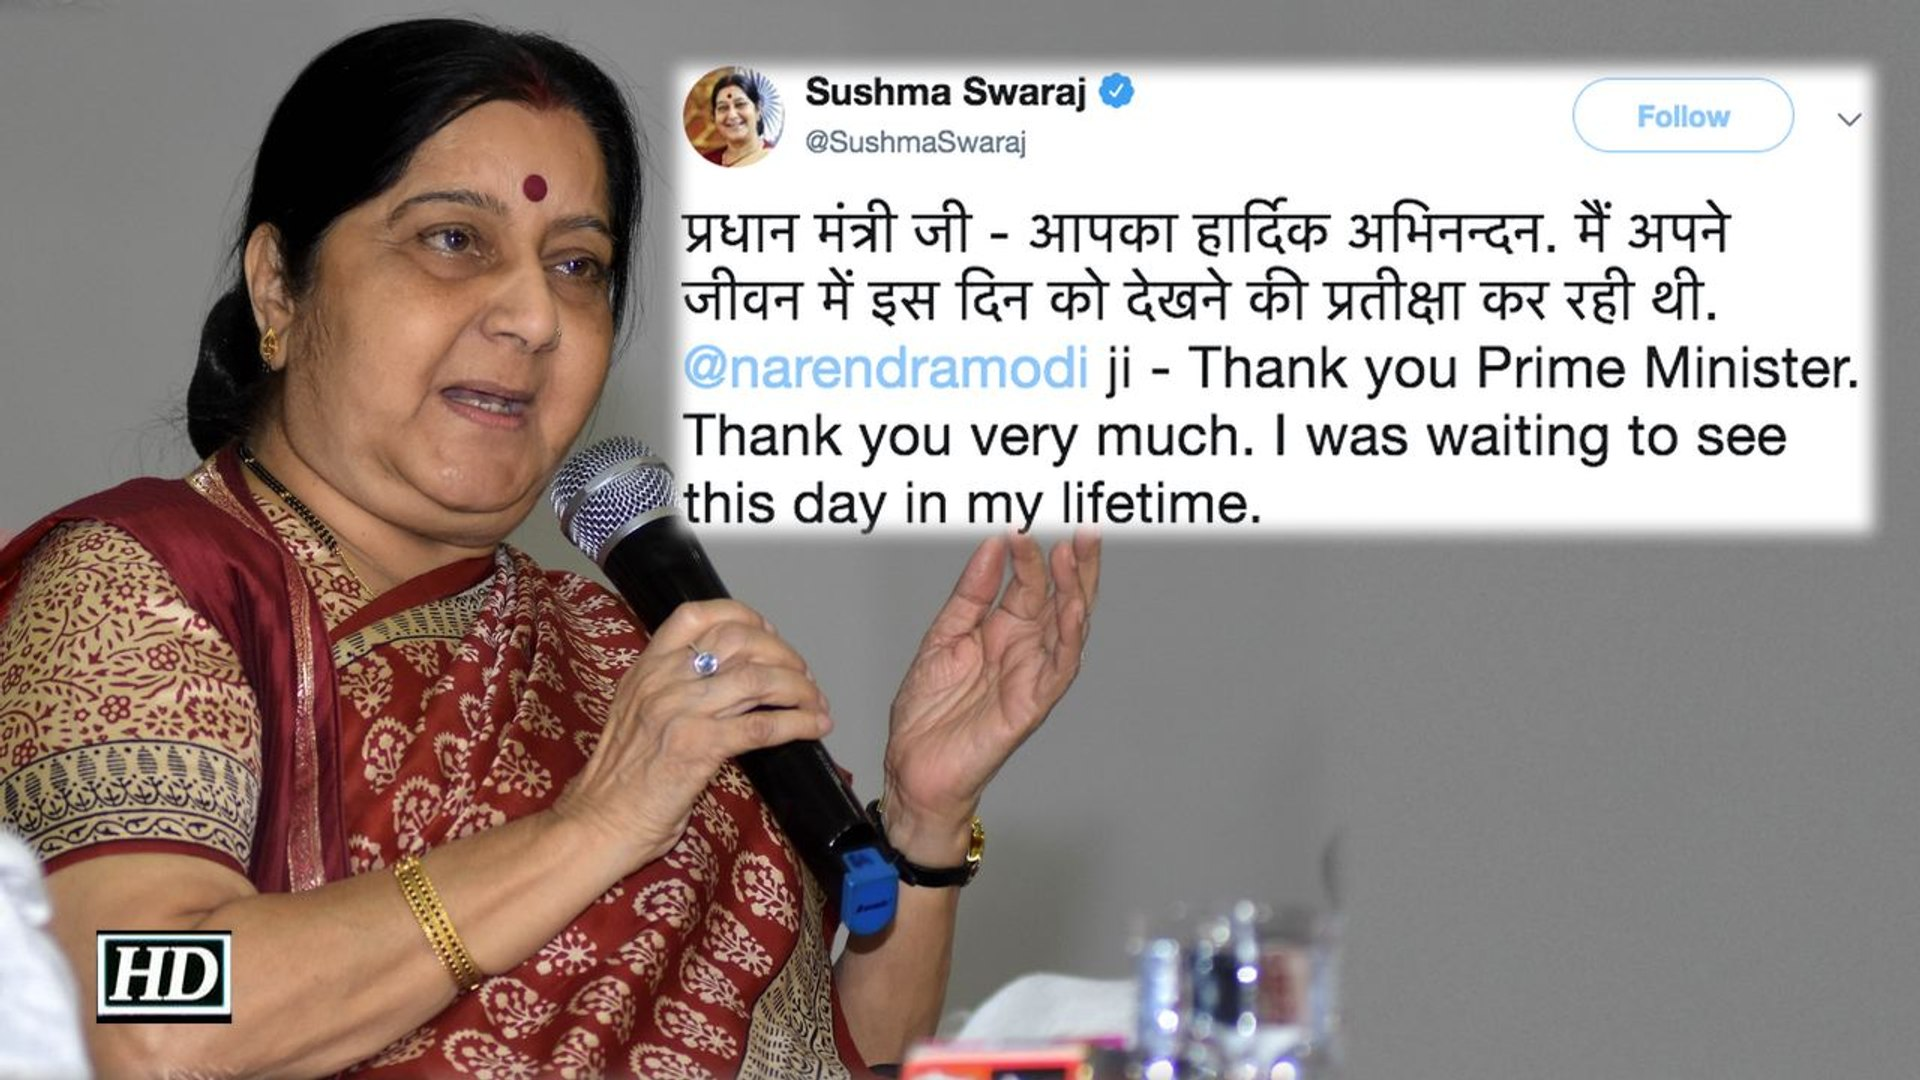 Waiting for the day Art 370 scrapped: Sushma's last tweet